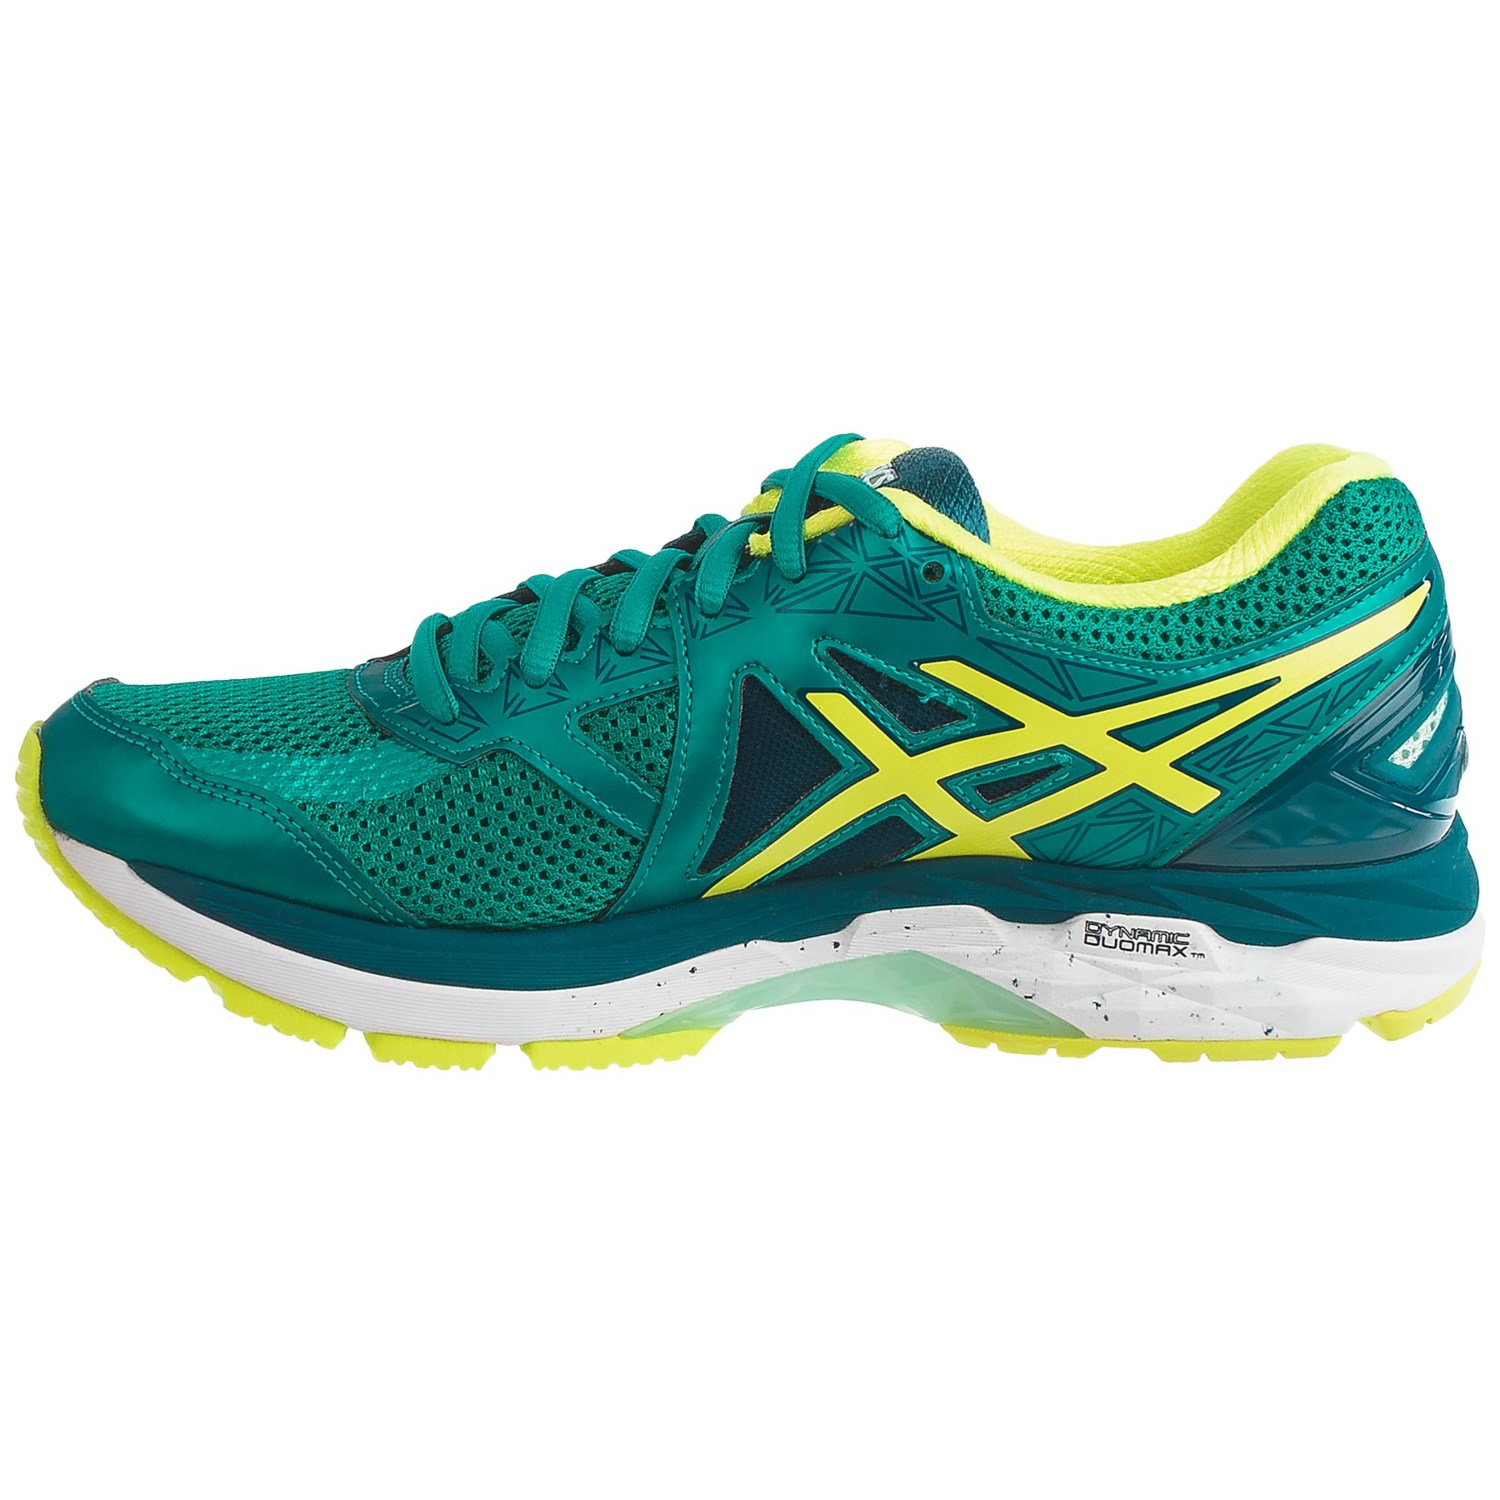 ASICS GT-2000 4 Running Shoes (For Women) - Save 20% e94f0fba47